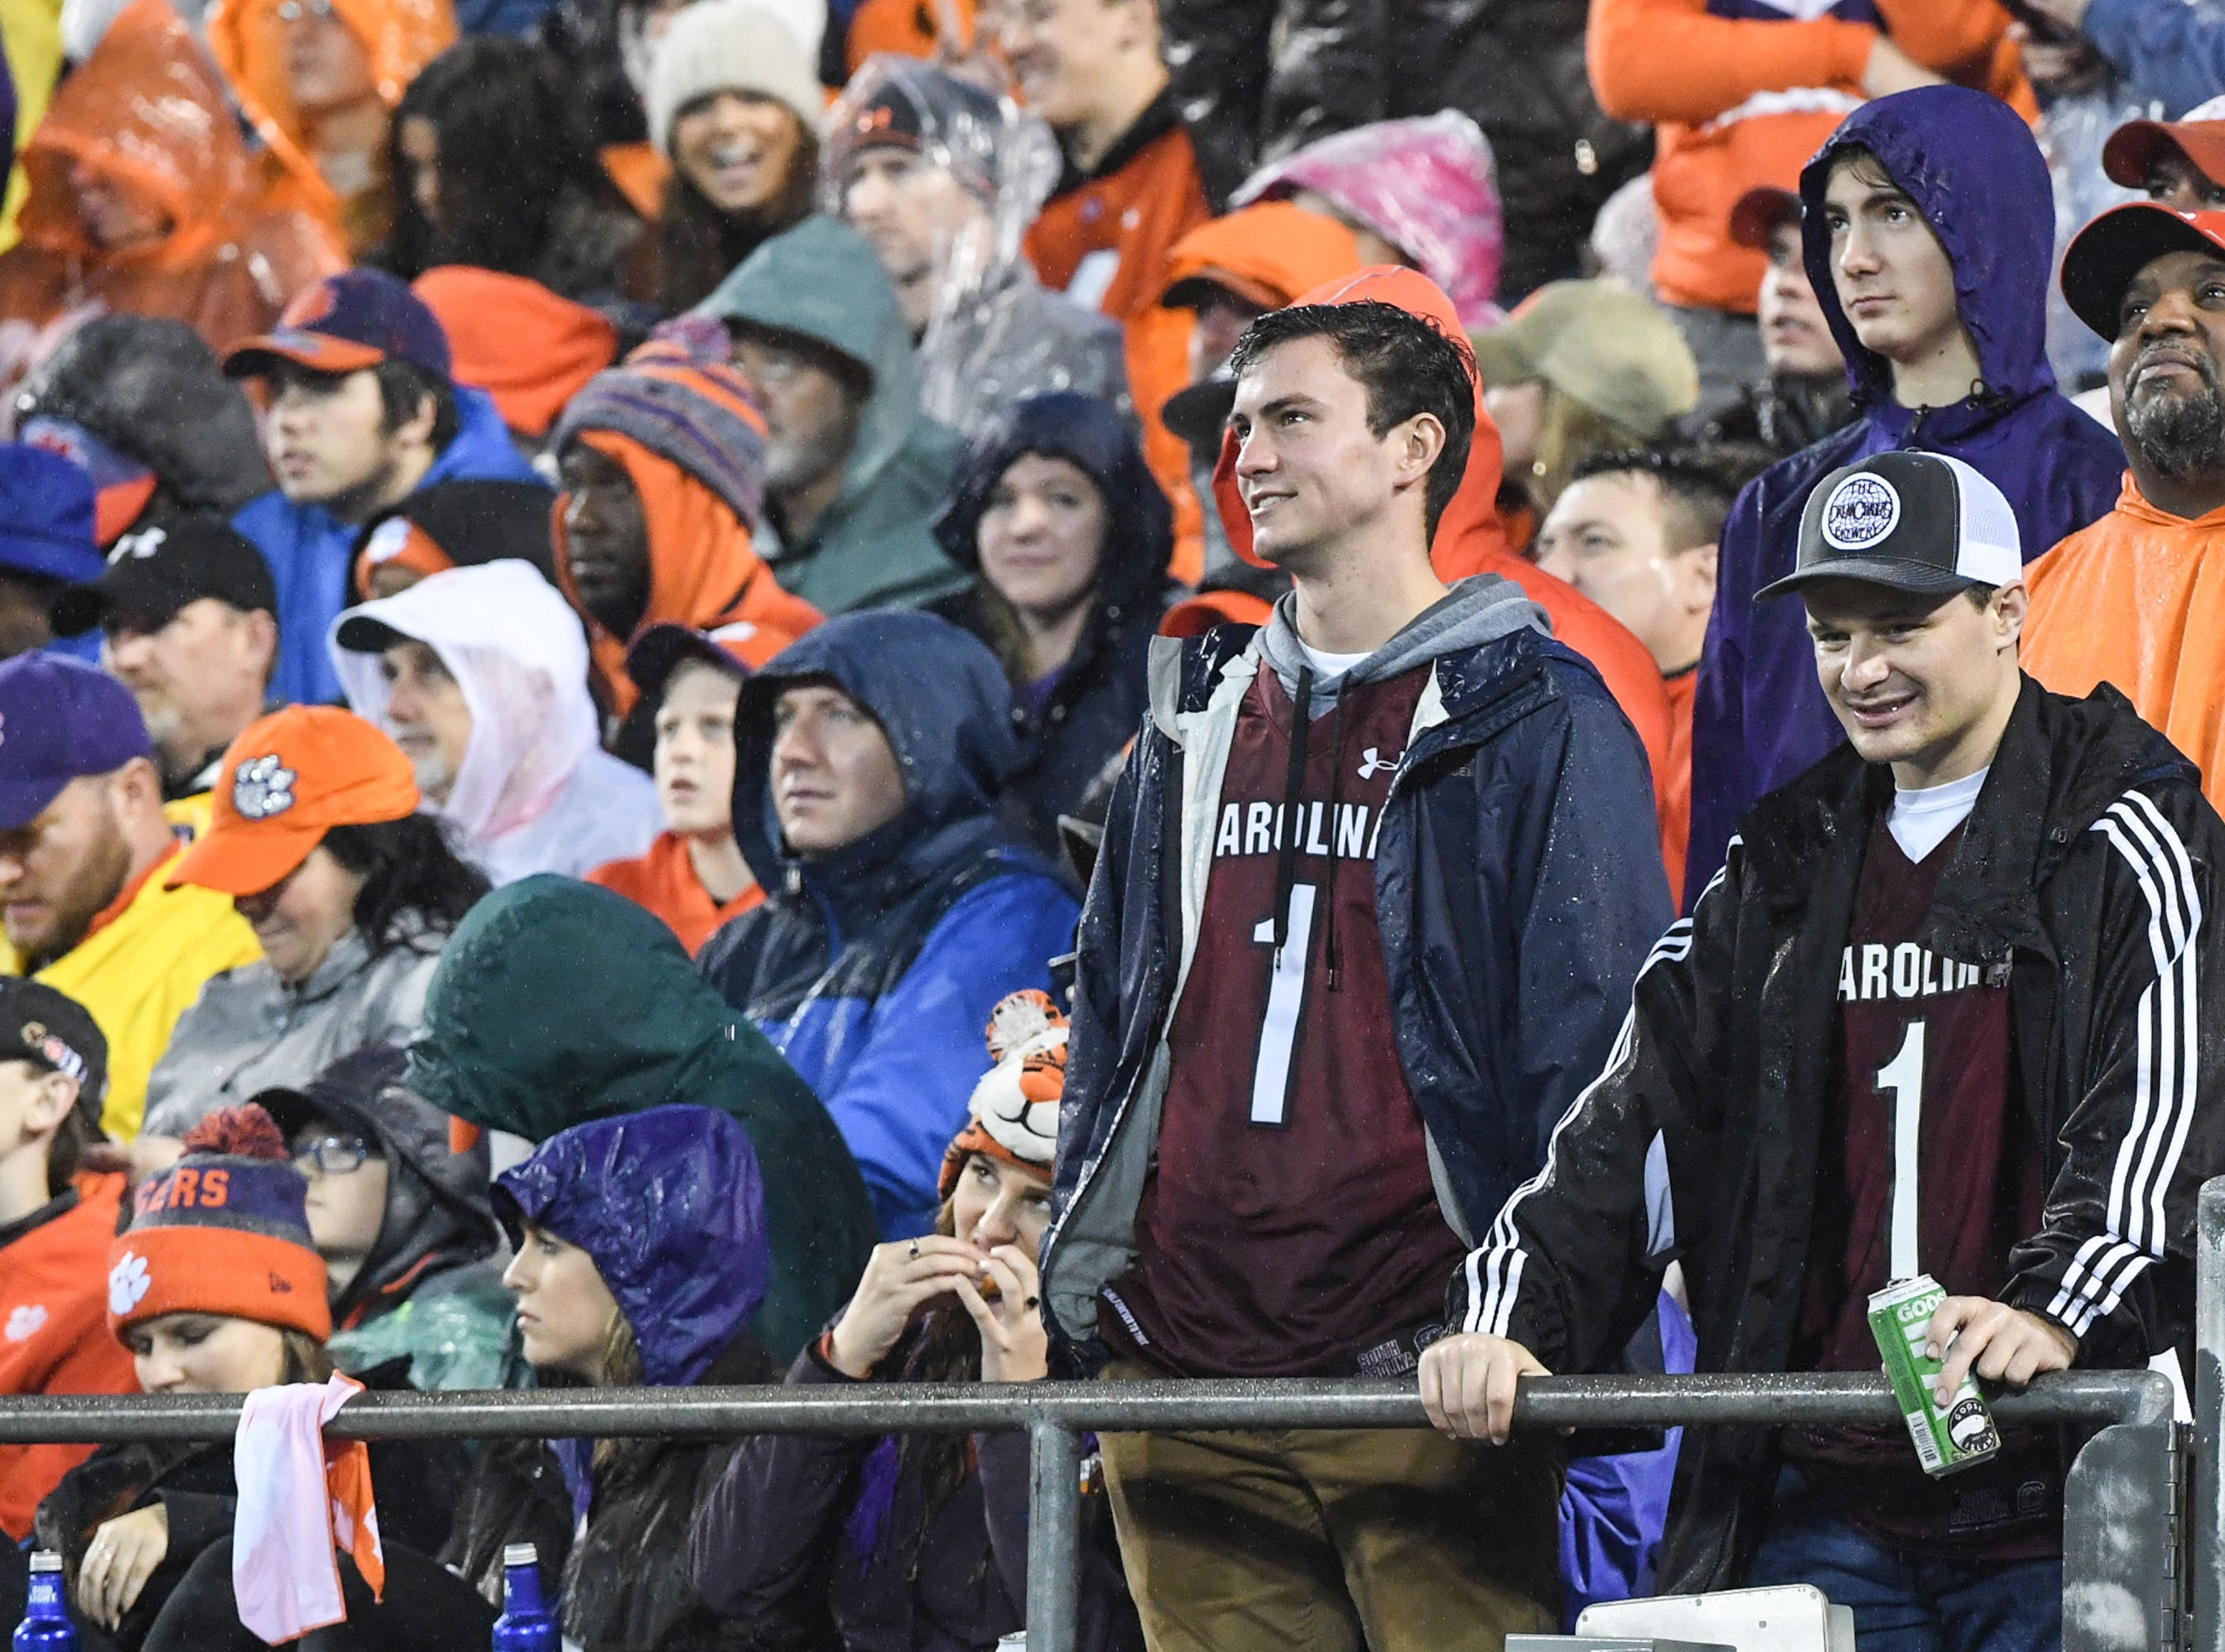 Two South Carolina fans watch the Clemson and Pittsburgh game during the second quarter of the Dr. Pepper ACC football championship at Bank of America Stadium in Charlotte, N.C. on Saturday, December 1, 2018.